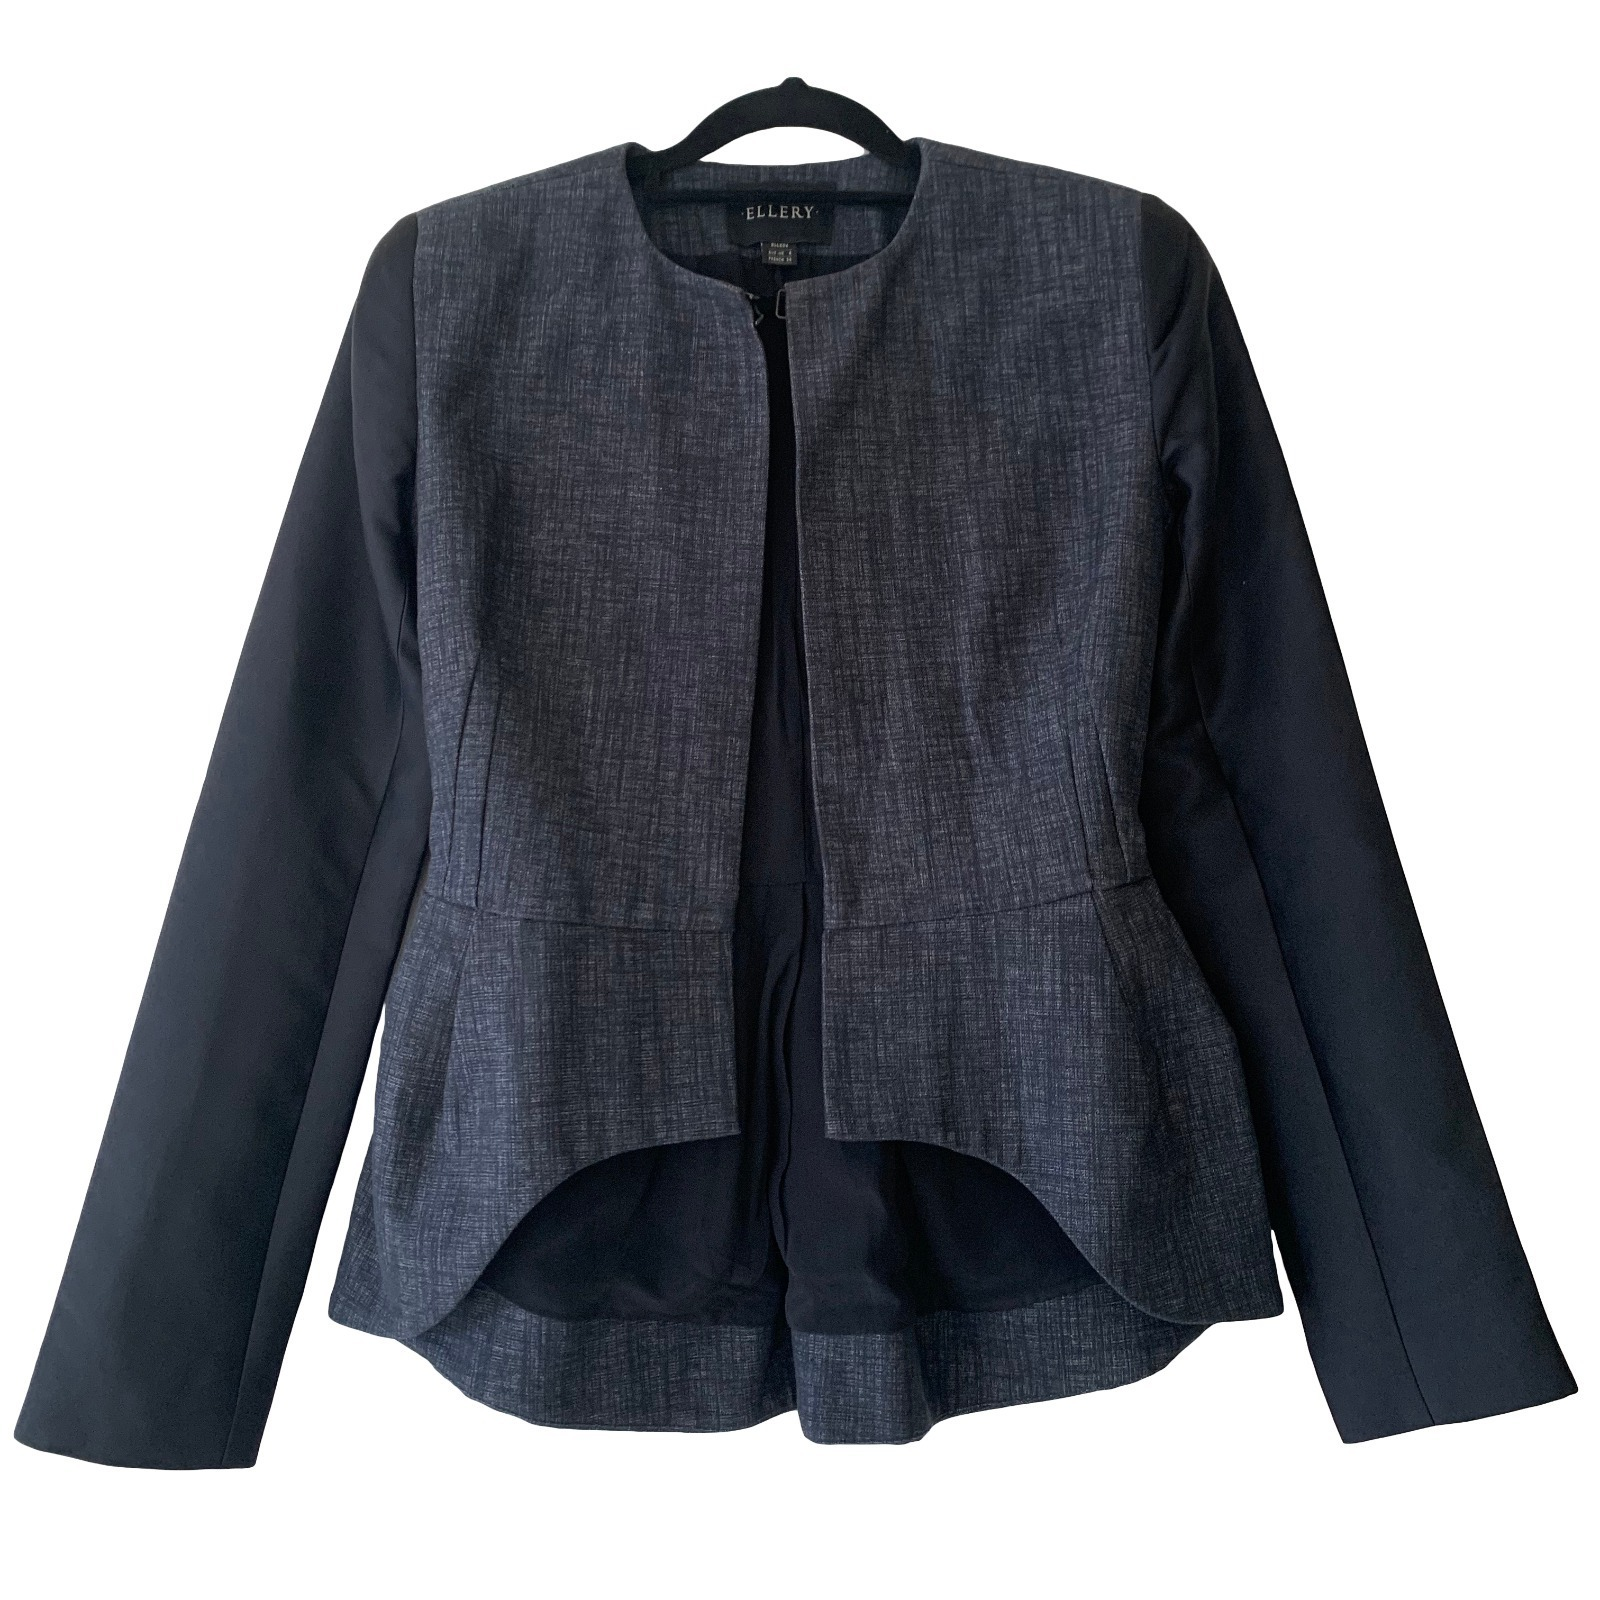 Buy: Blue Black Linen/Silk Tailored Jacket Size 6